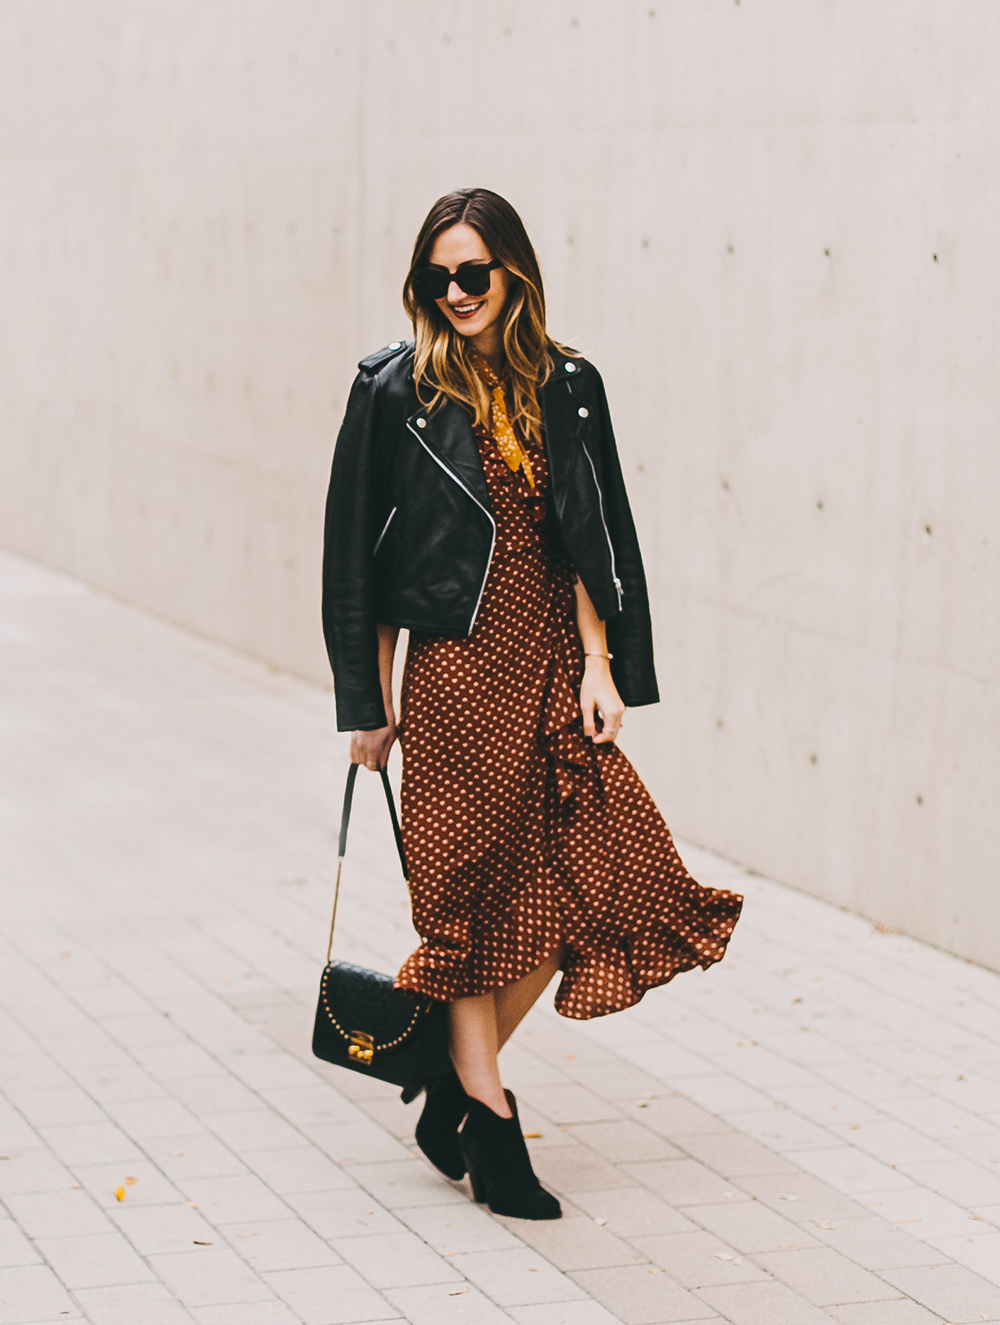 livvyland-blog-olivia-watson-austin-texas-fashion-blogger-urban-outfitters-wrap-dress-sezane-leather-jacket-fall-outfit-idea-1